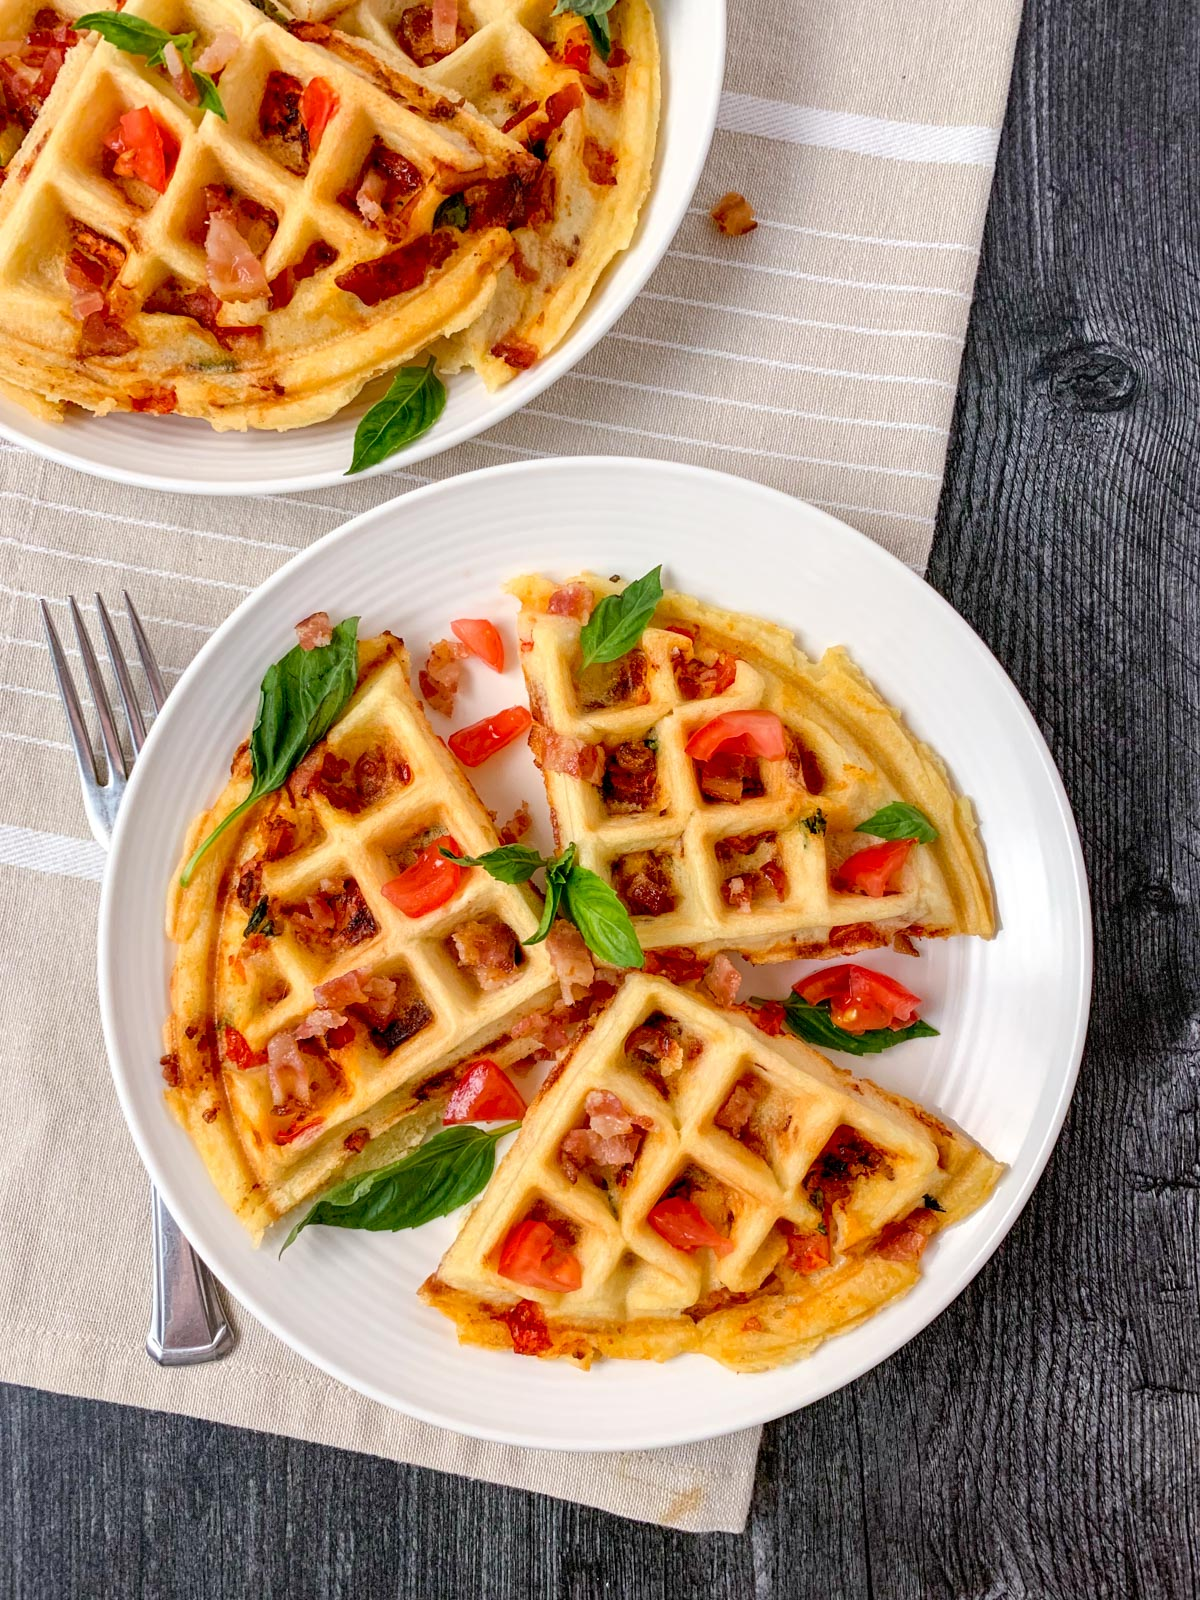 Savory waffles stuffed with bacon and tomatoes.